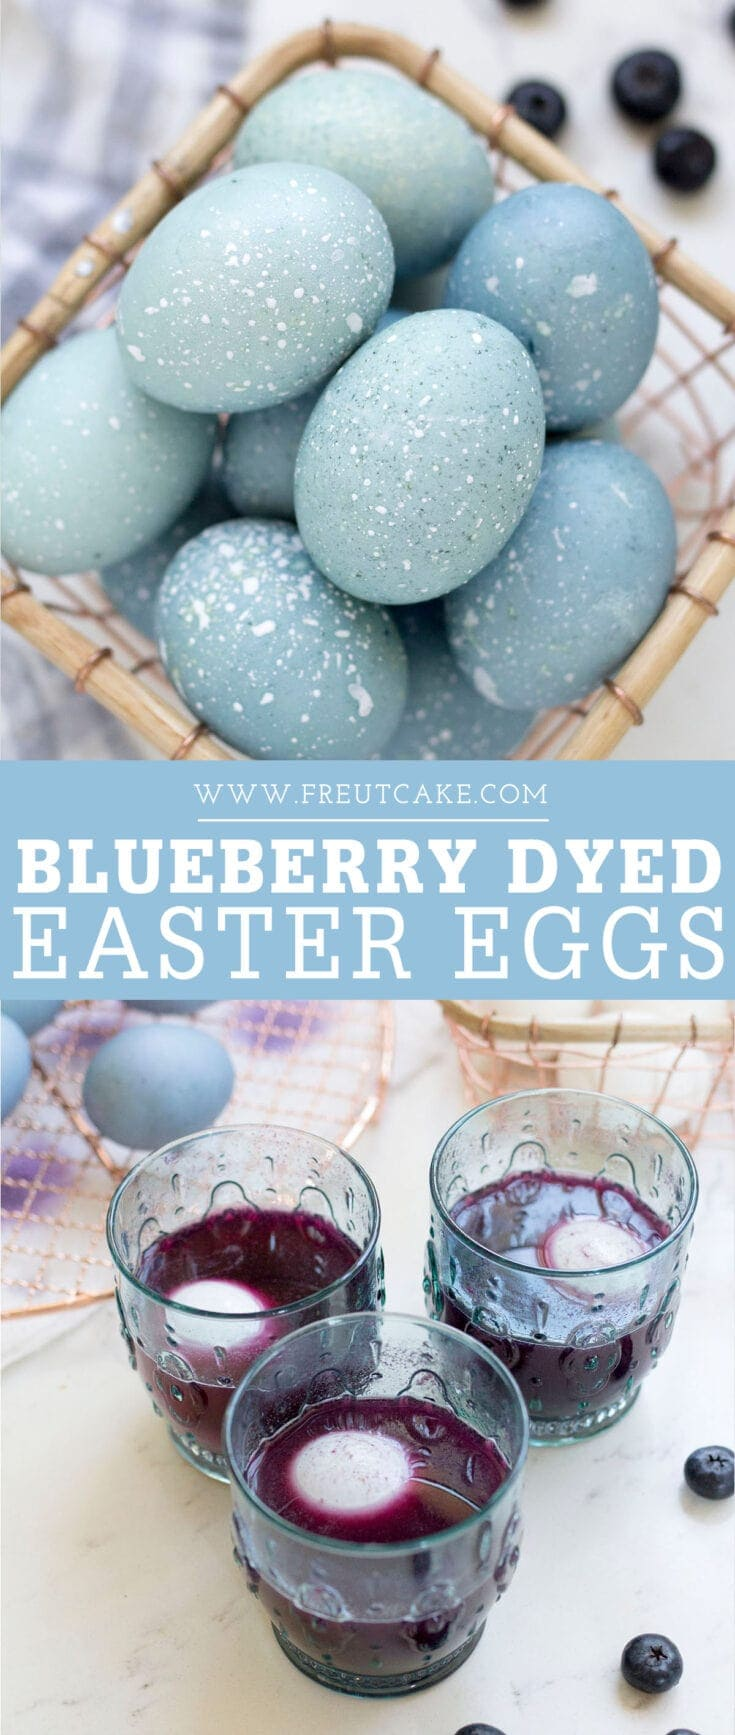 How to dye Easter eggs naturally with blueberries. #nontoxic #naturaldye #eastereggs #easter